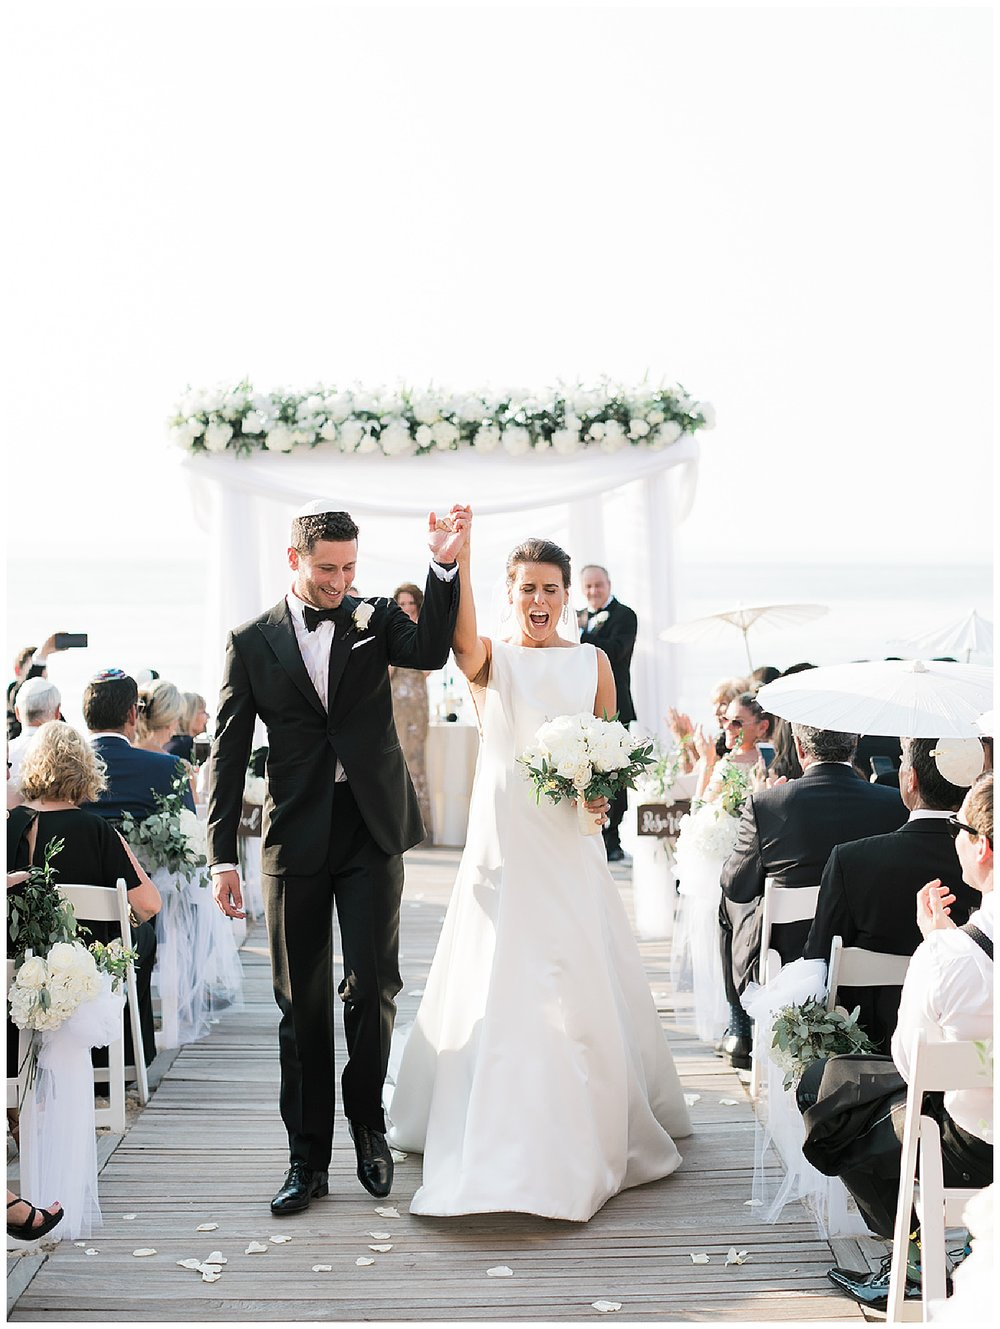 Crescent Beach Club Wedding | Black Tie Beach Wedding | Bayville, NY | www.redoakweddings.com